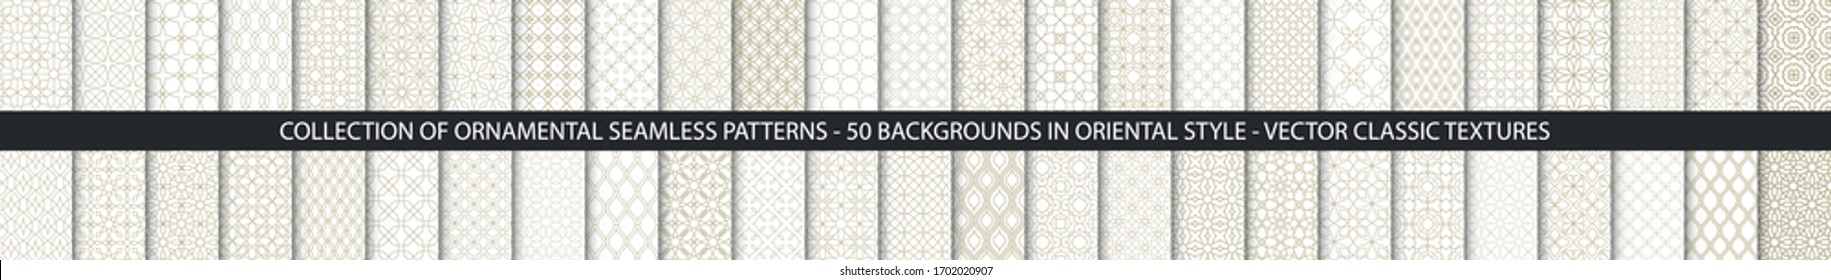 Super Big set of 50 oriental patterns. White and gold background with Arabic ornaments. Patterns, backgrounds and wallpapers for your design. Textile ornament. Vector illustration.